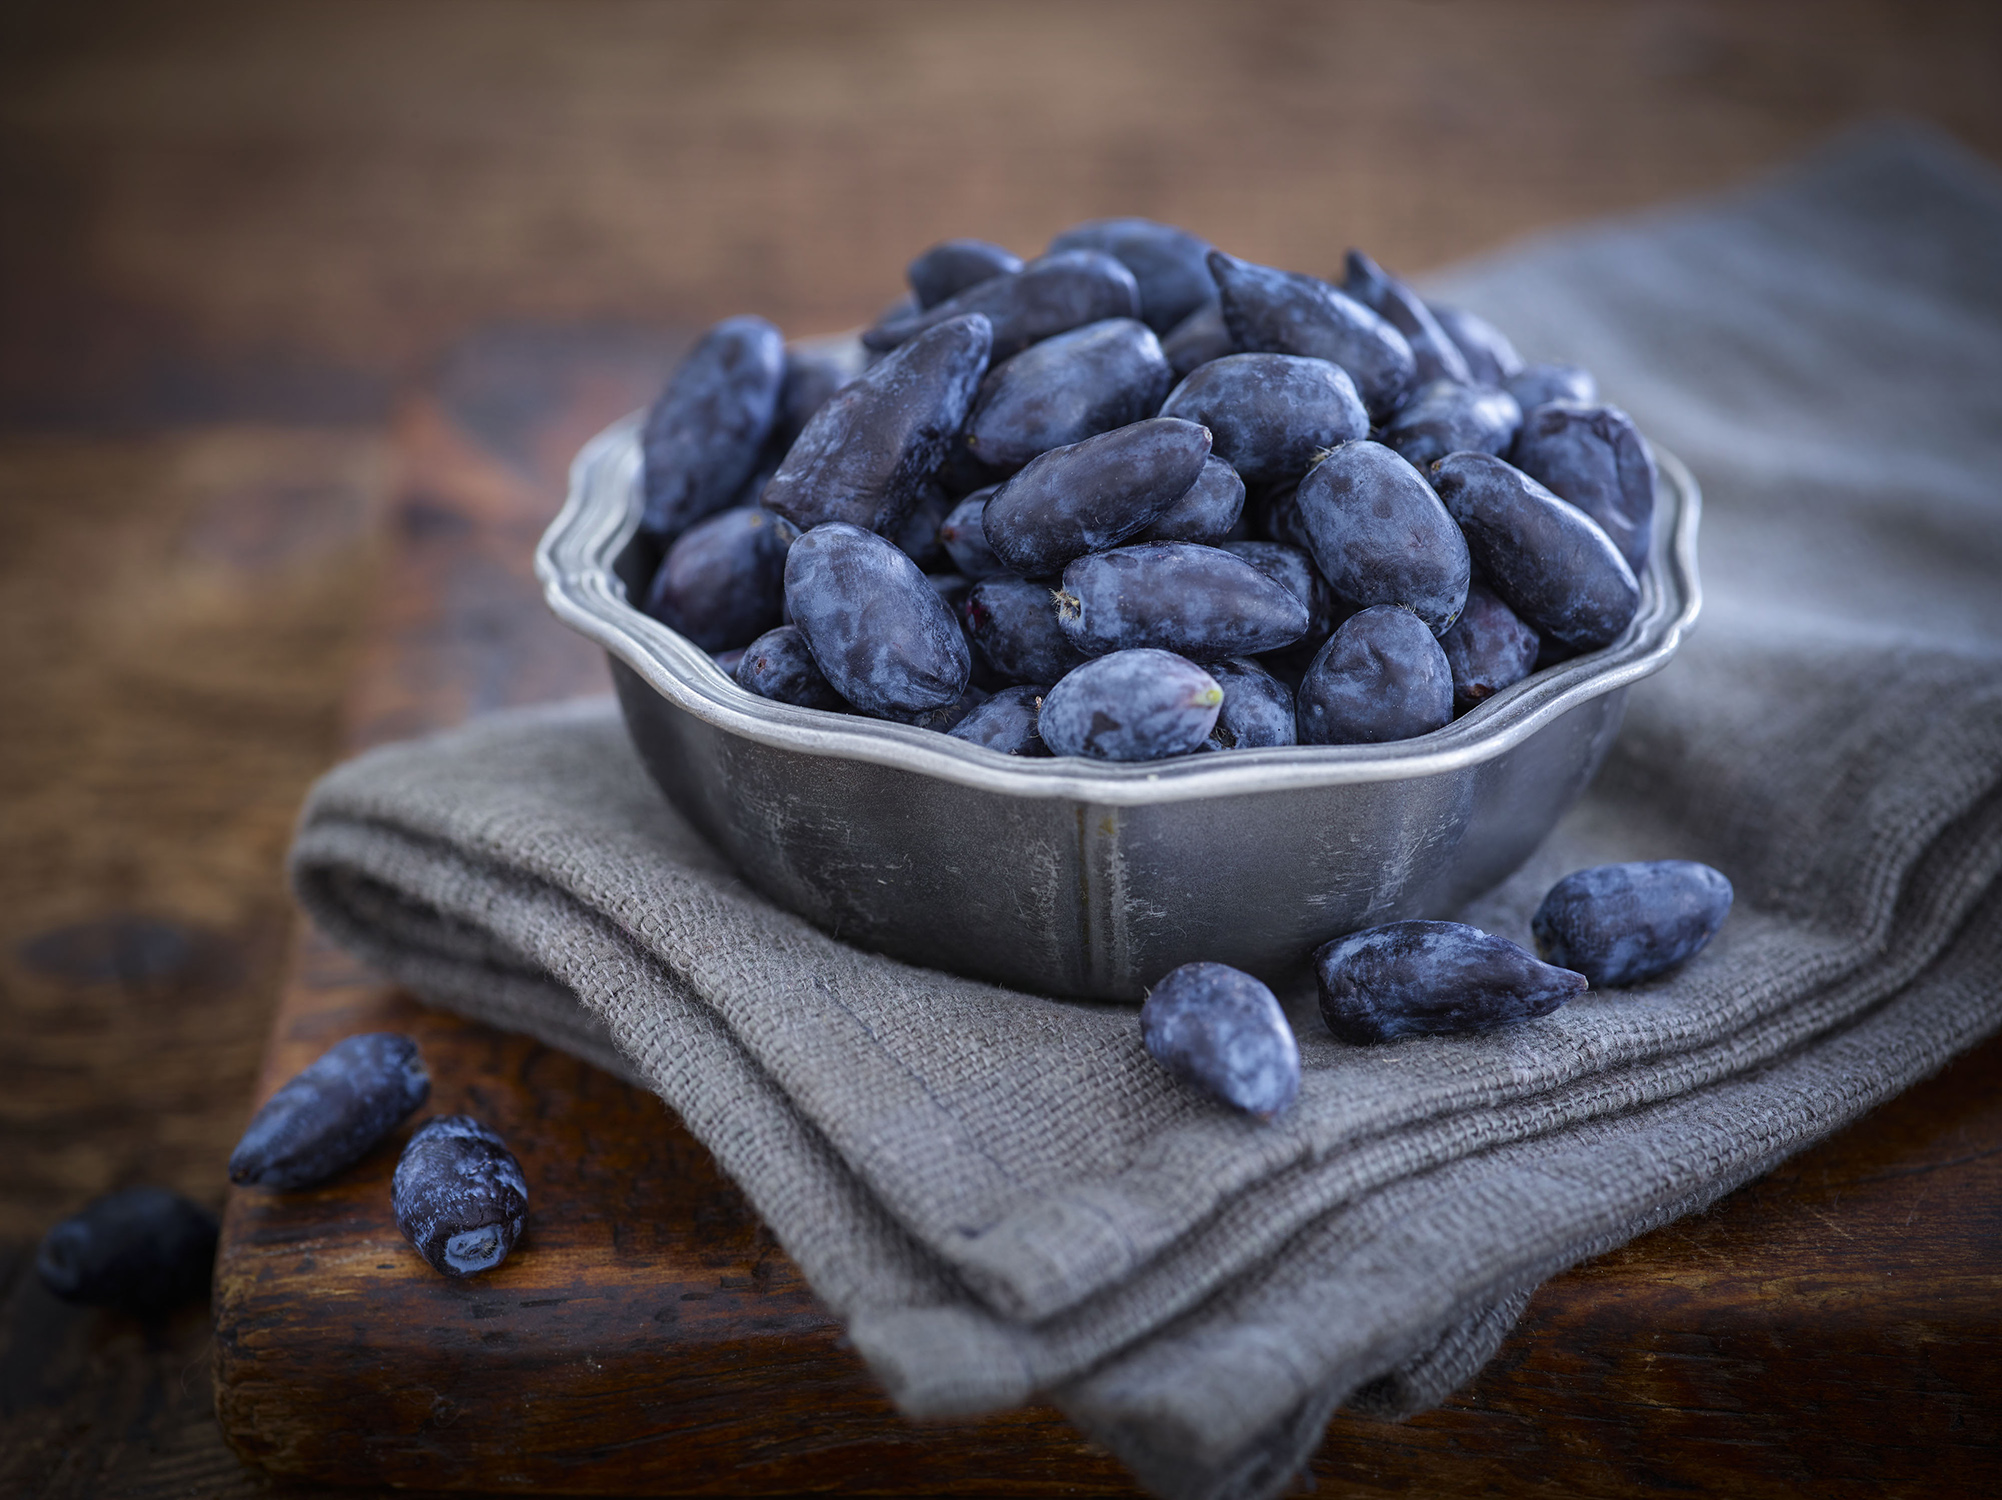 Soloberry receive green light in notification process to list haskap berries as traditional food